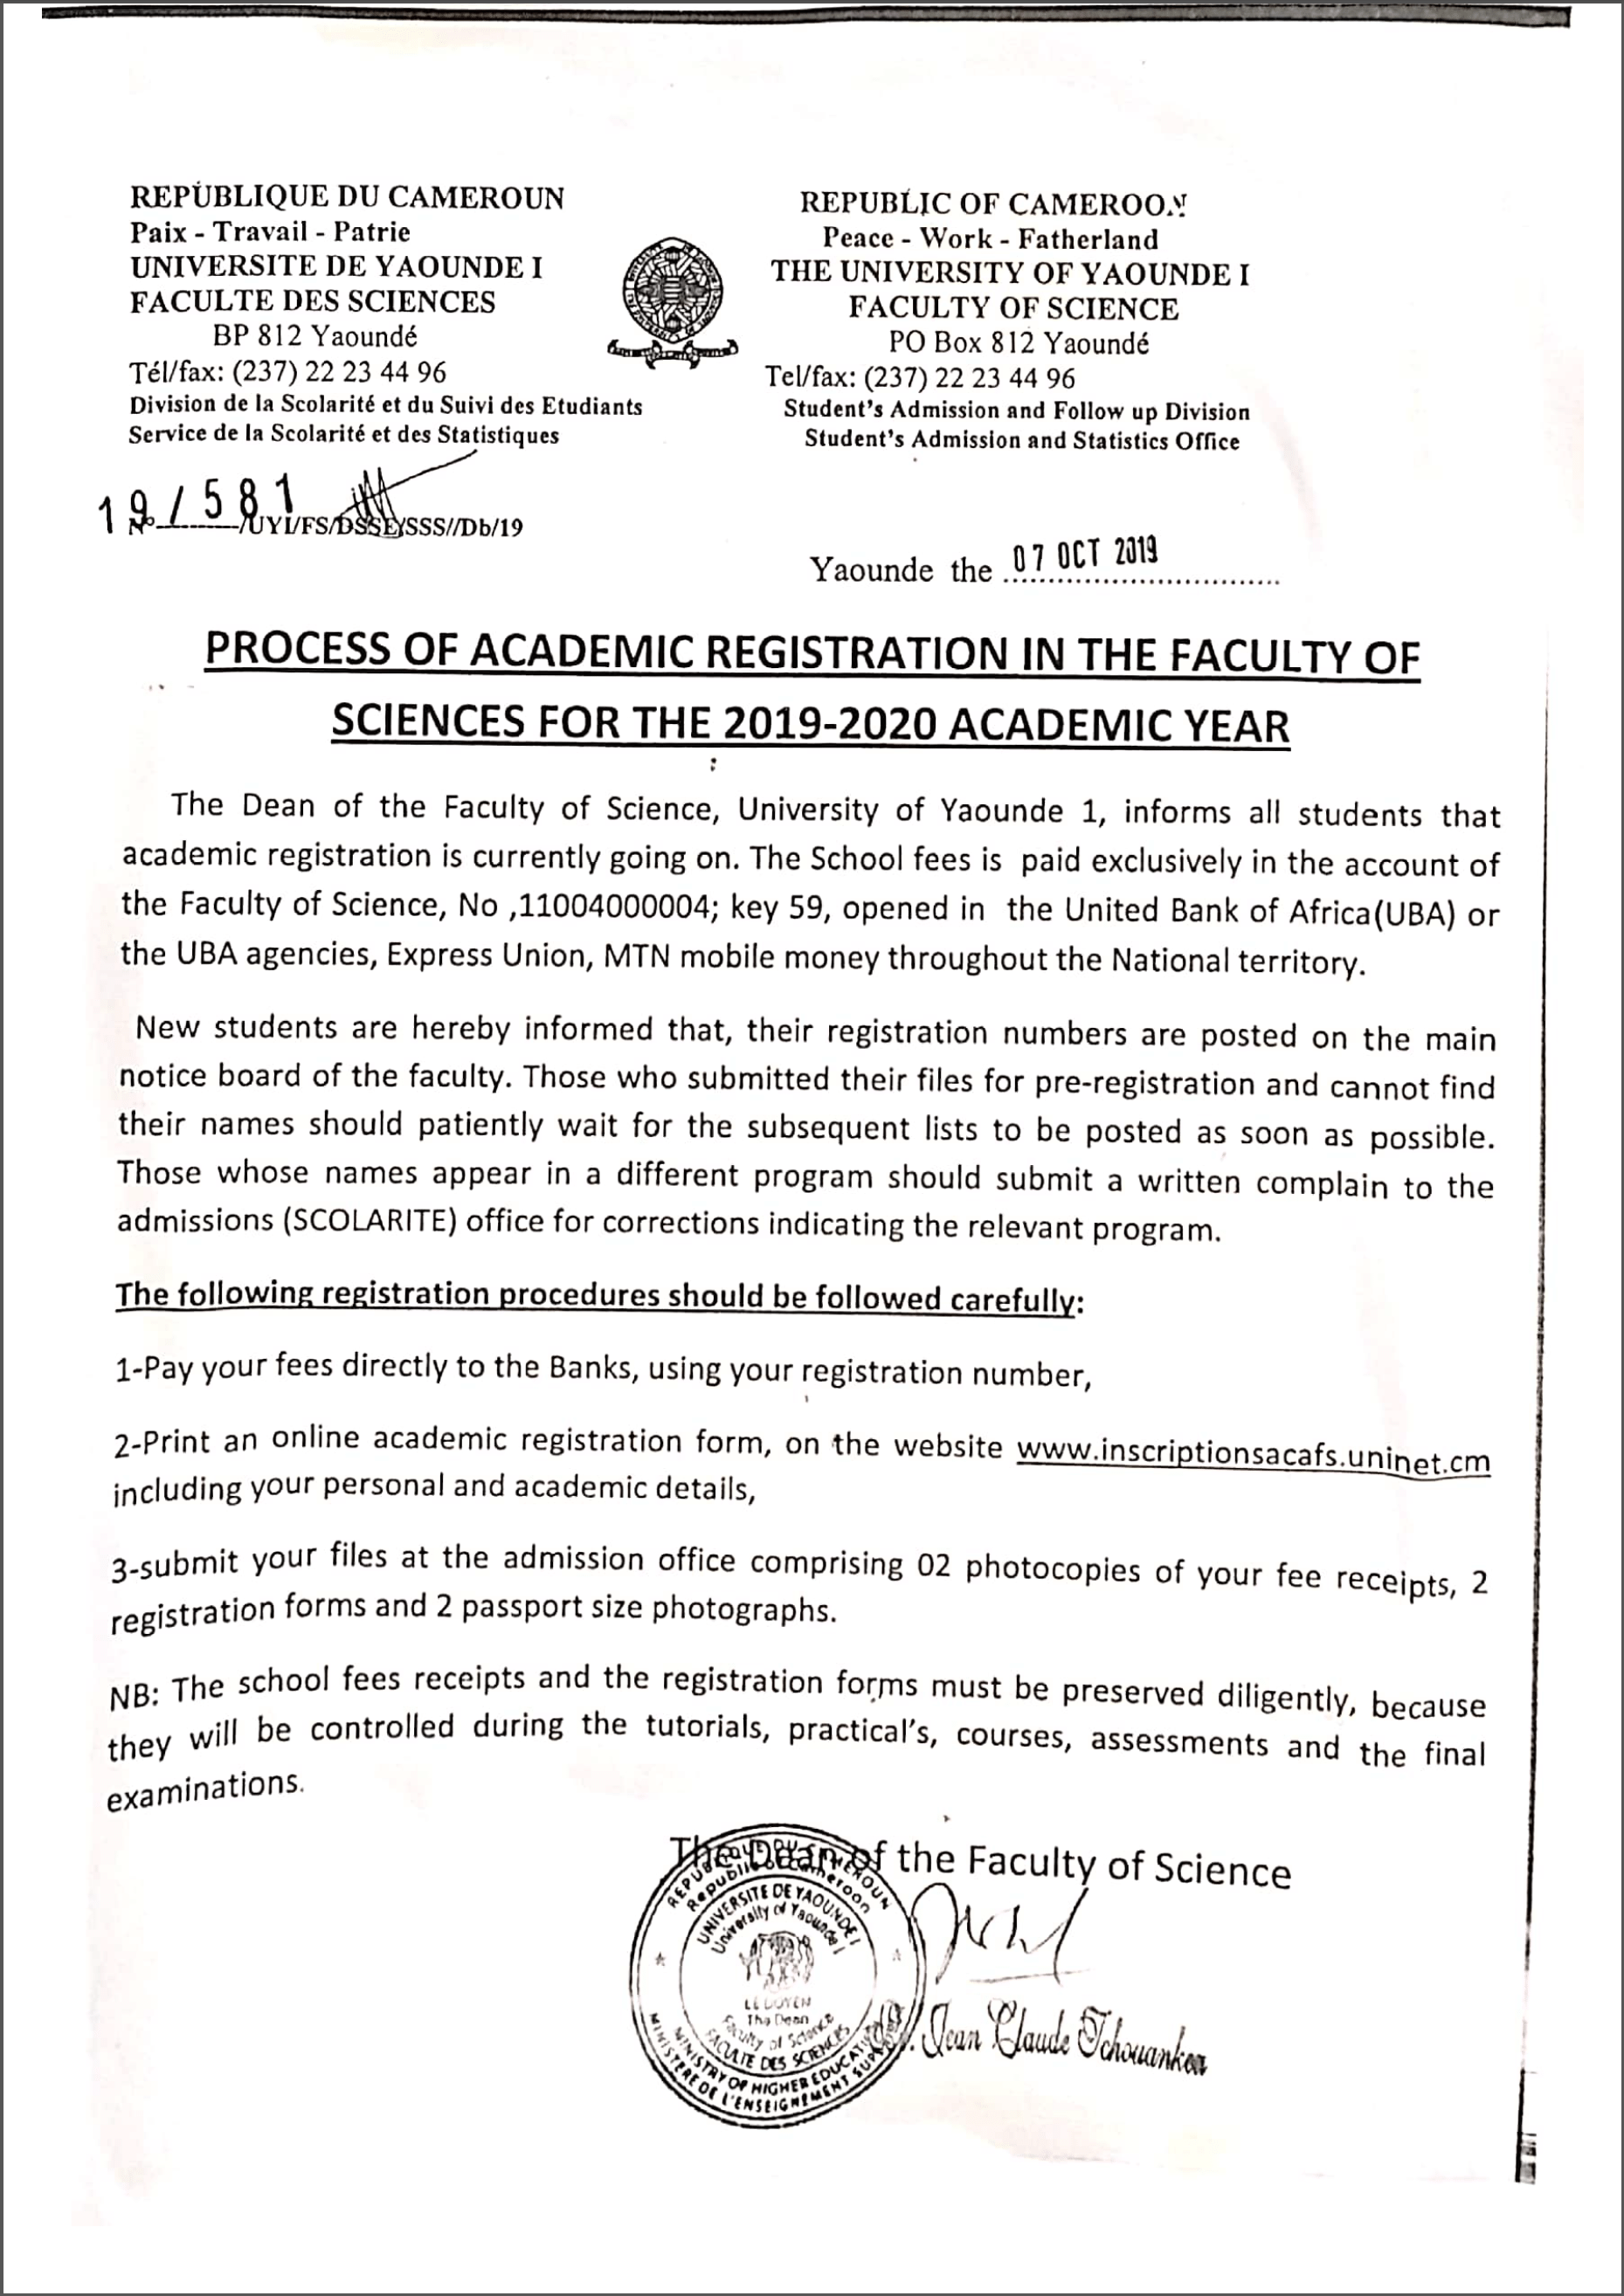 PROCESS OF ACADEMIC REGISTRATION IN THE FACULTY OF SCIENCES FOR THE -2019-2020 ACADEMIC YEAR